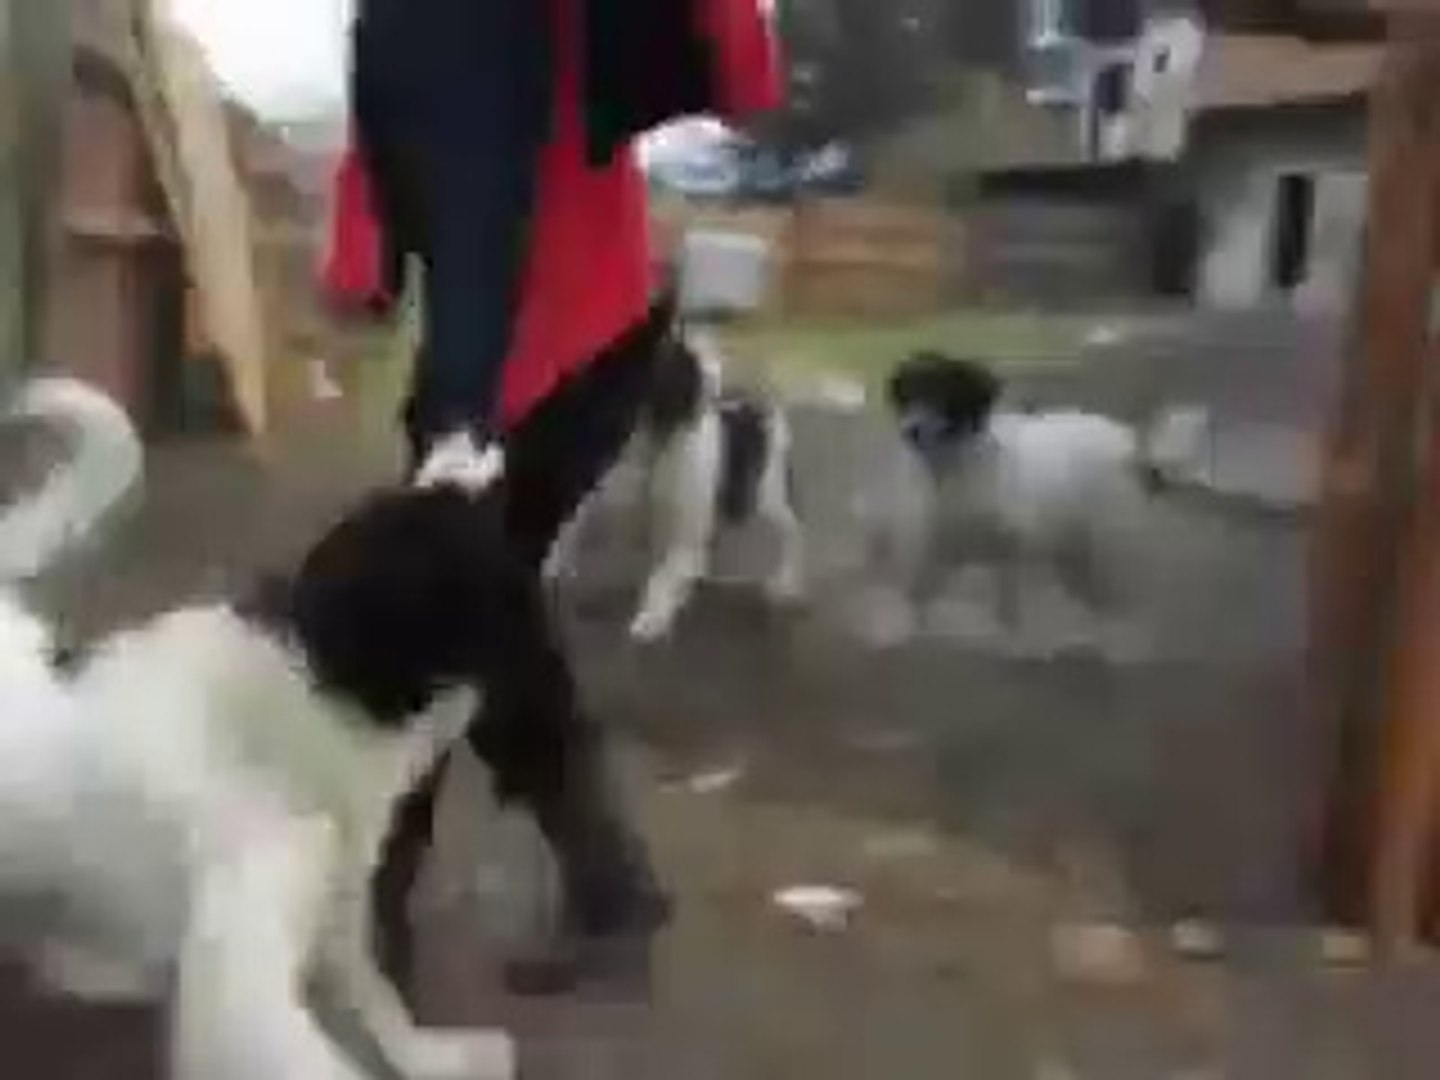 KOPEKLERi KIZDIRIRKEN BAKIN BASINA NE GELDi - TEASiNG DOGS and BEiNG BiTTEN